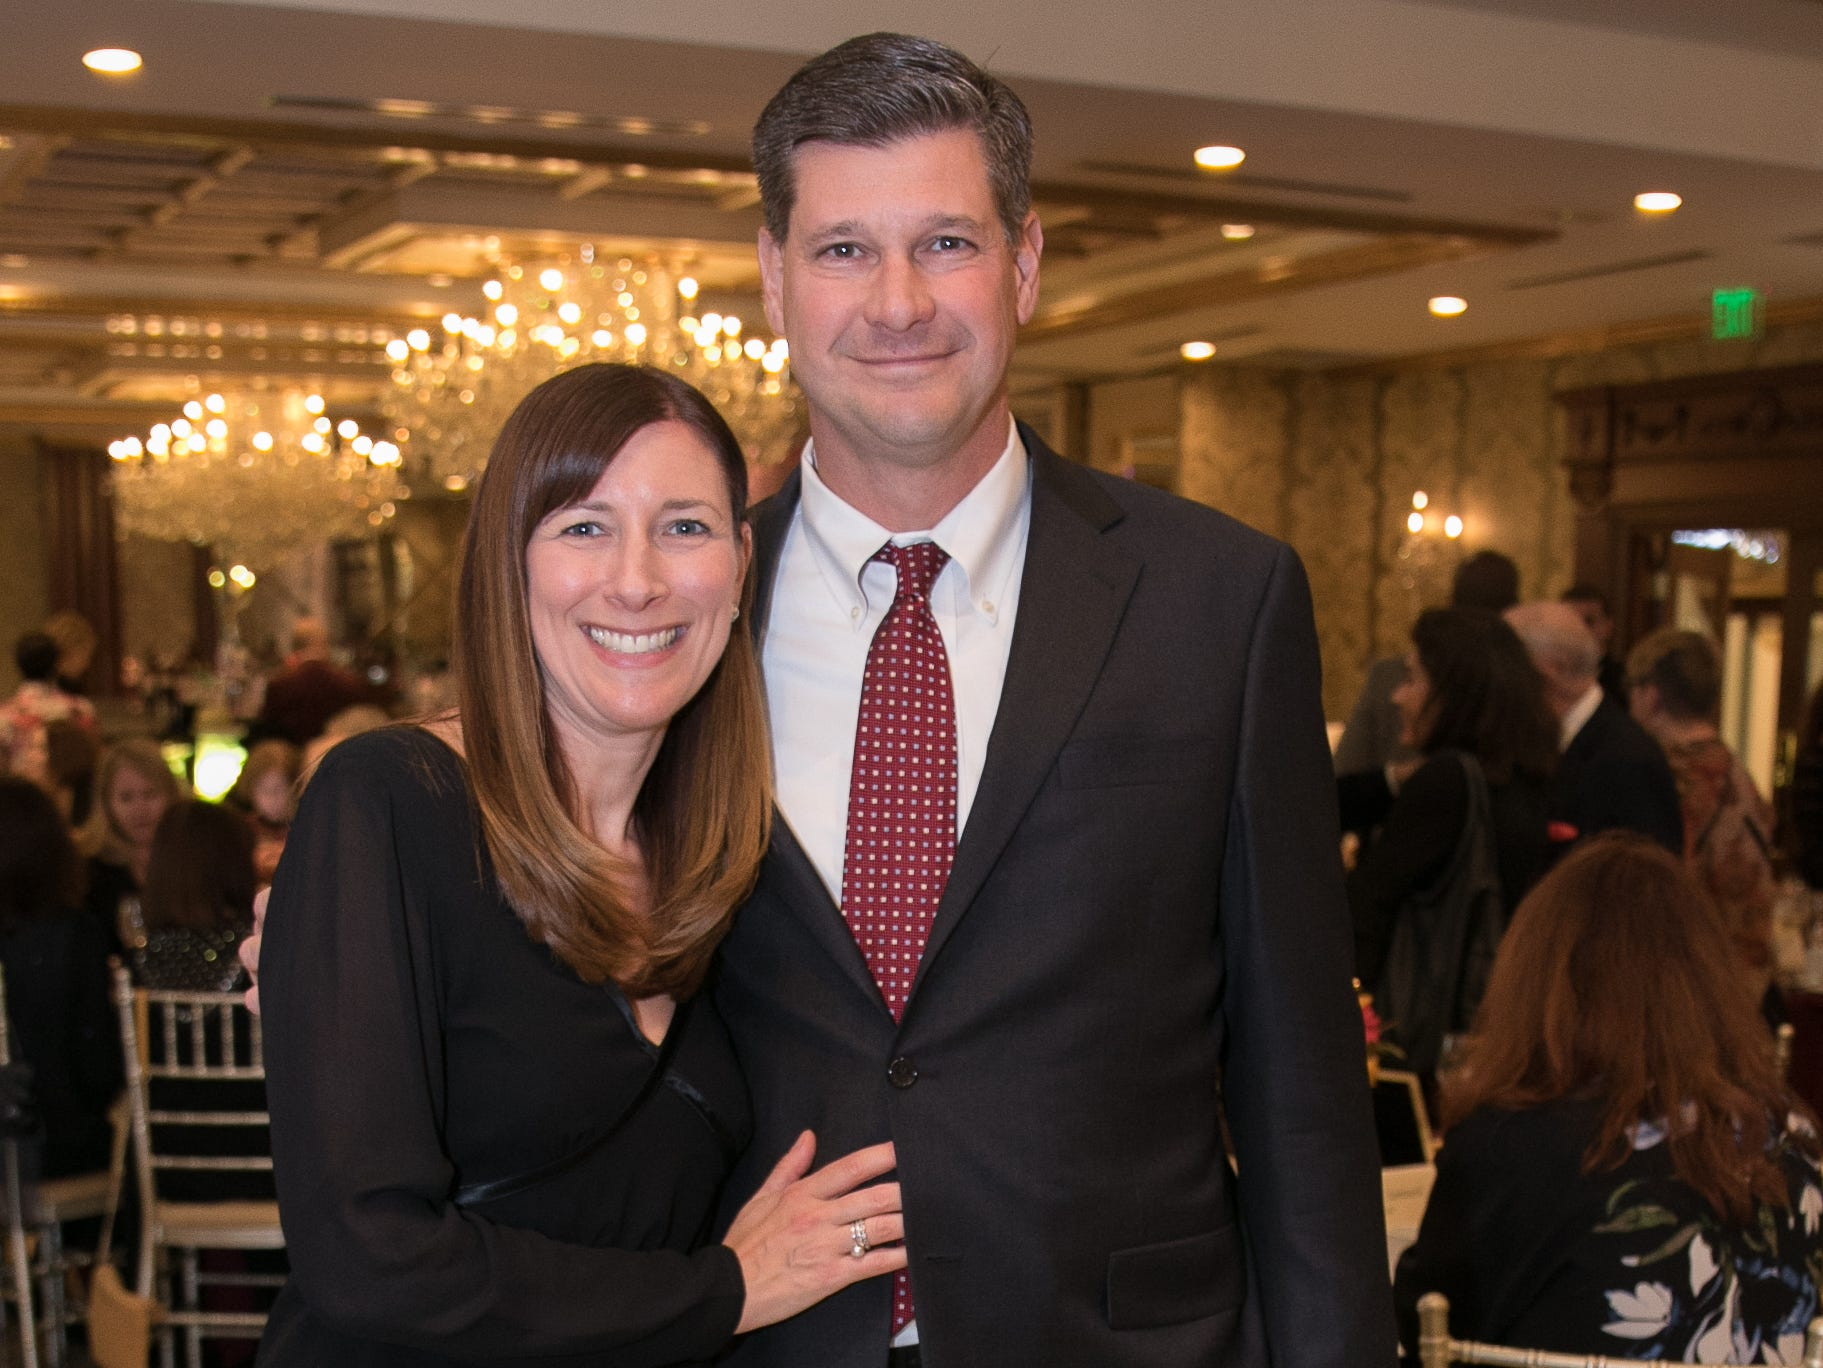 Honorees Rebecca Petri, John Ehresman. Youth Consultation Service – YCS held their 100th Anniversary Celebration at Seasons in Washington Township.11/5/2018